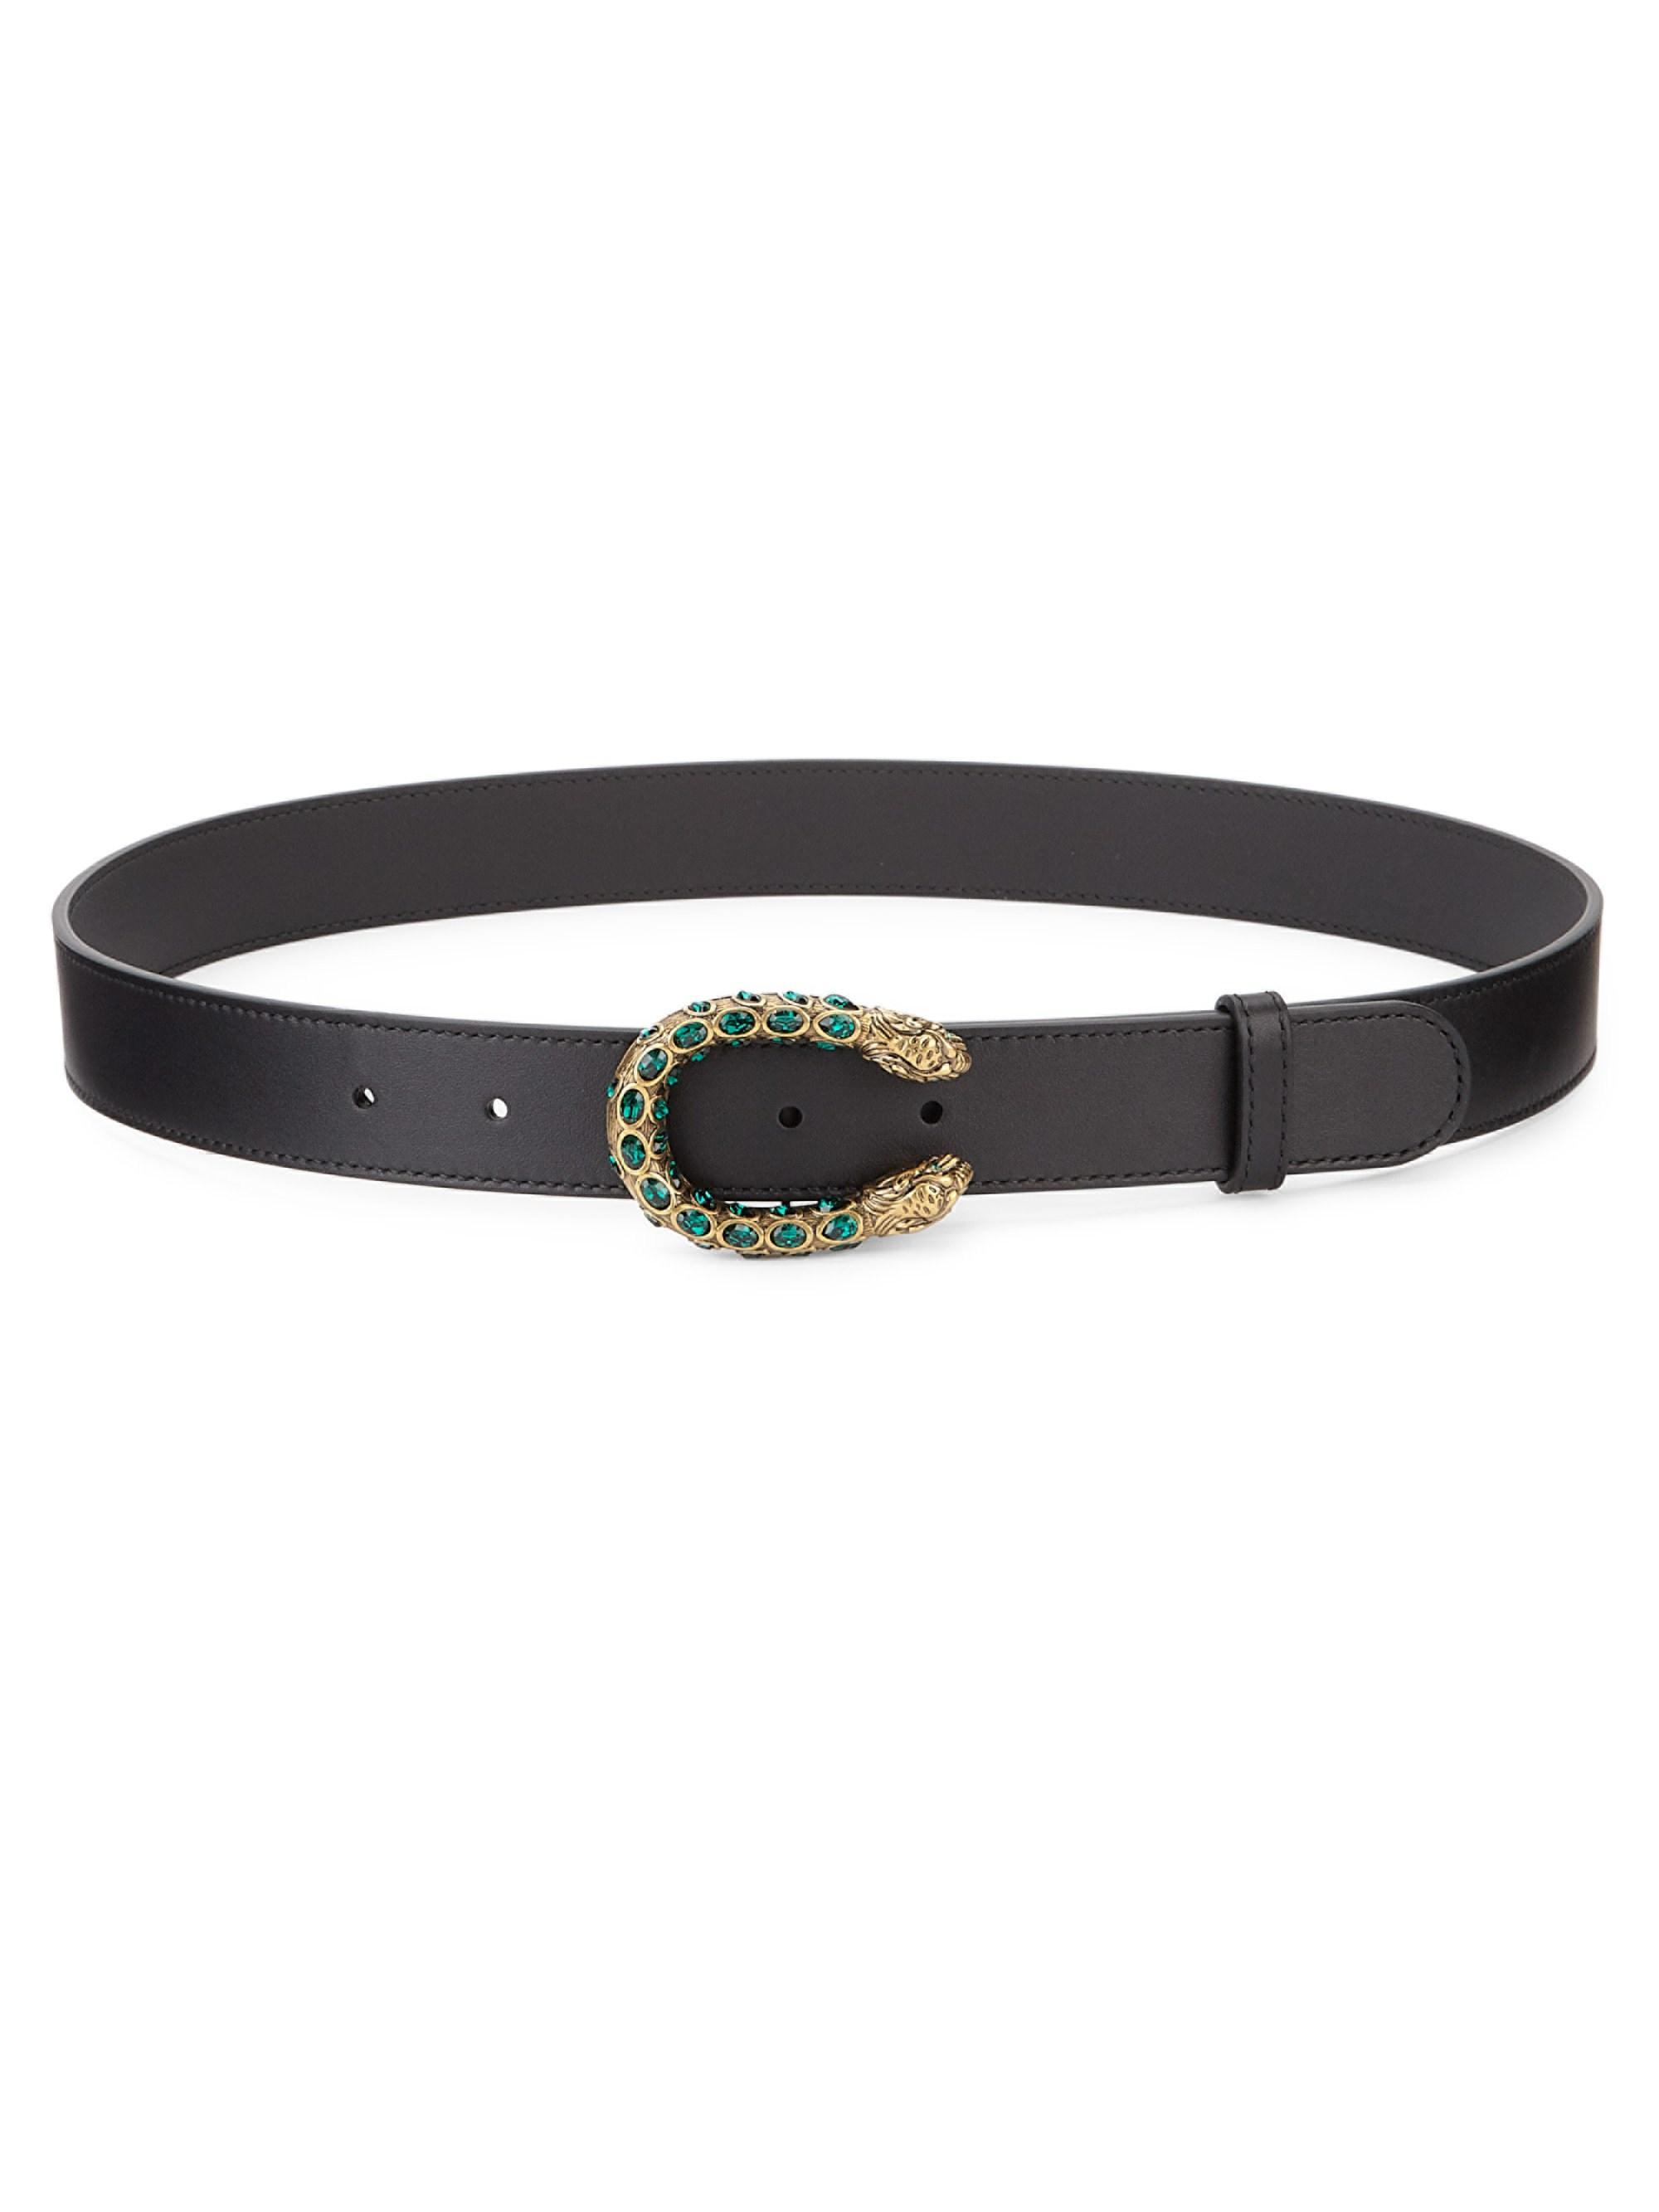 c95ecf314ec Gallery. Previously sold at  Saks Fifth Avenue · Women s Leather Belts